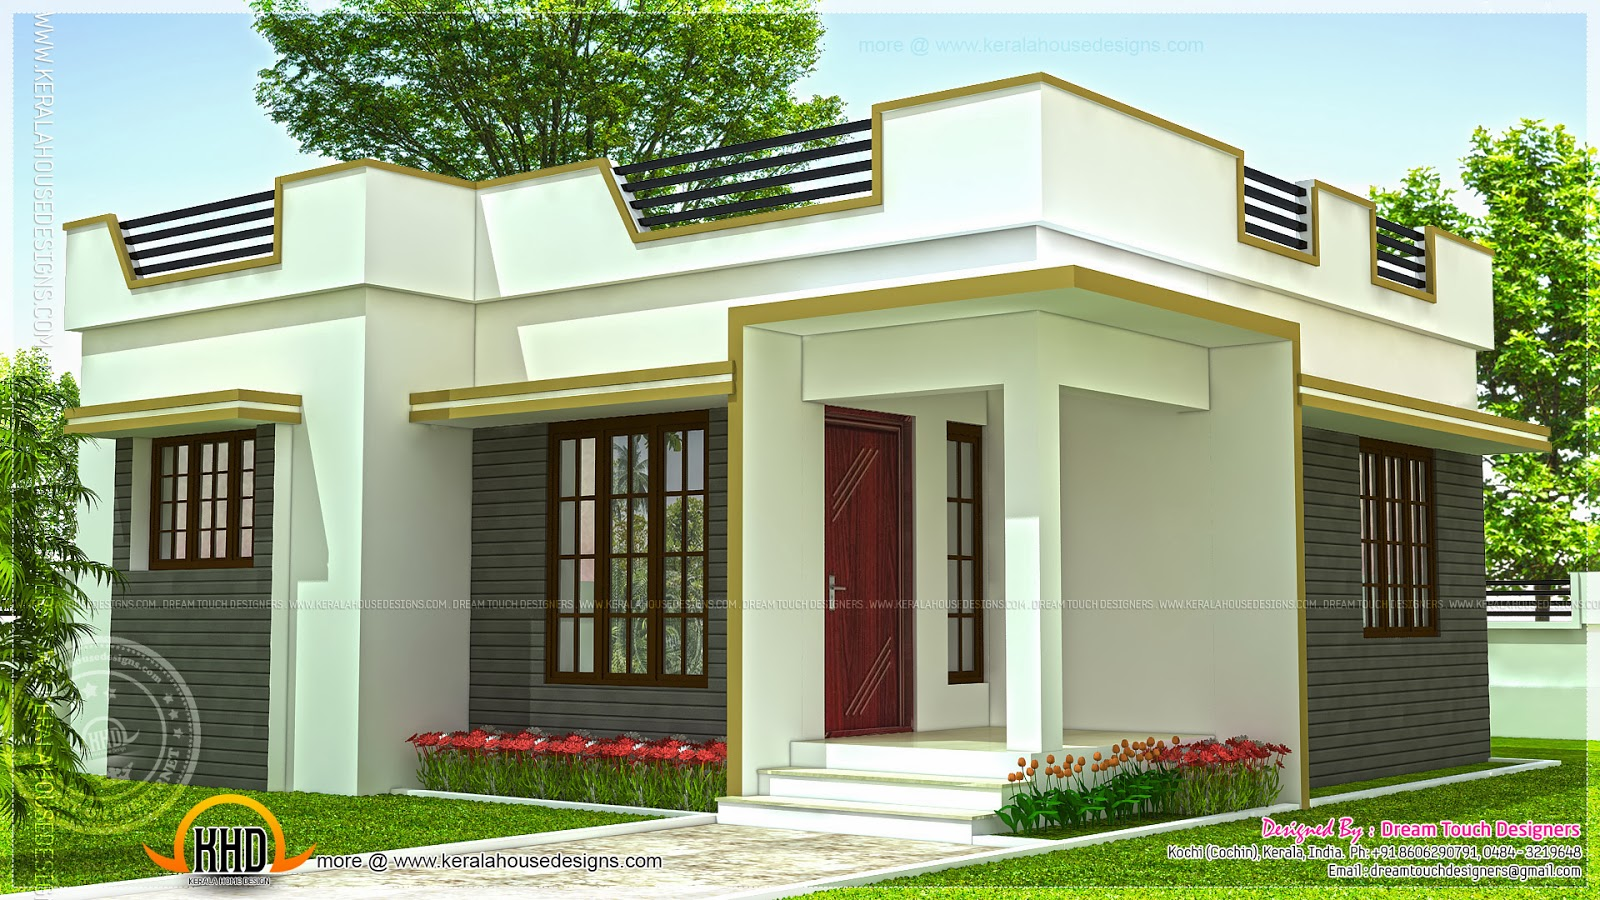 Thoughtskoto for Indian small house designs photos